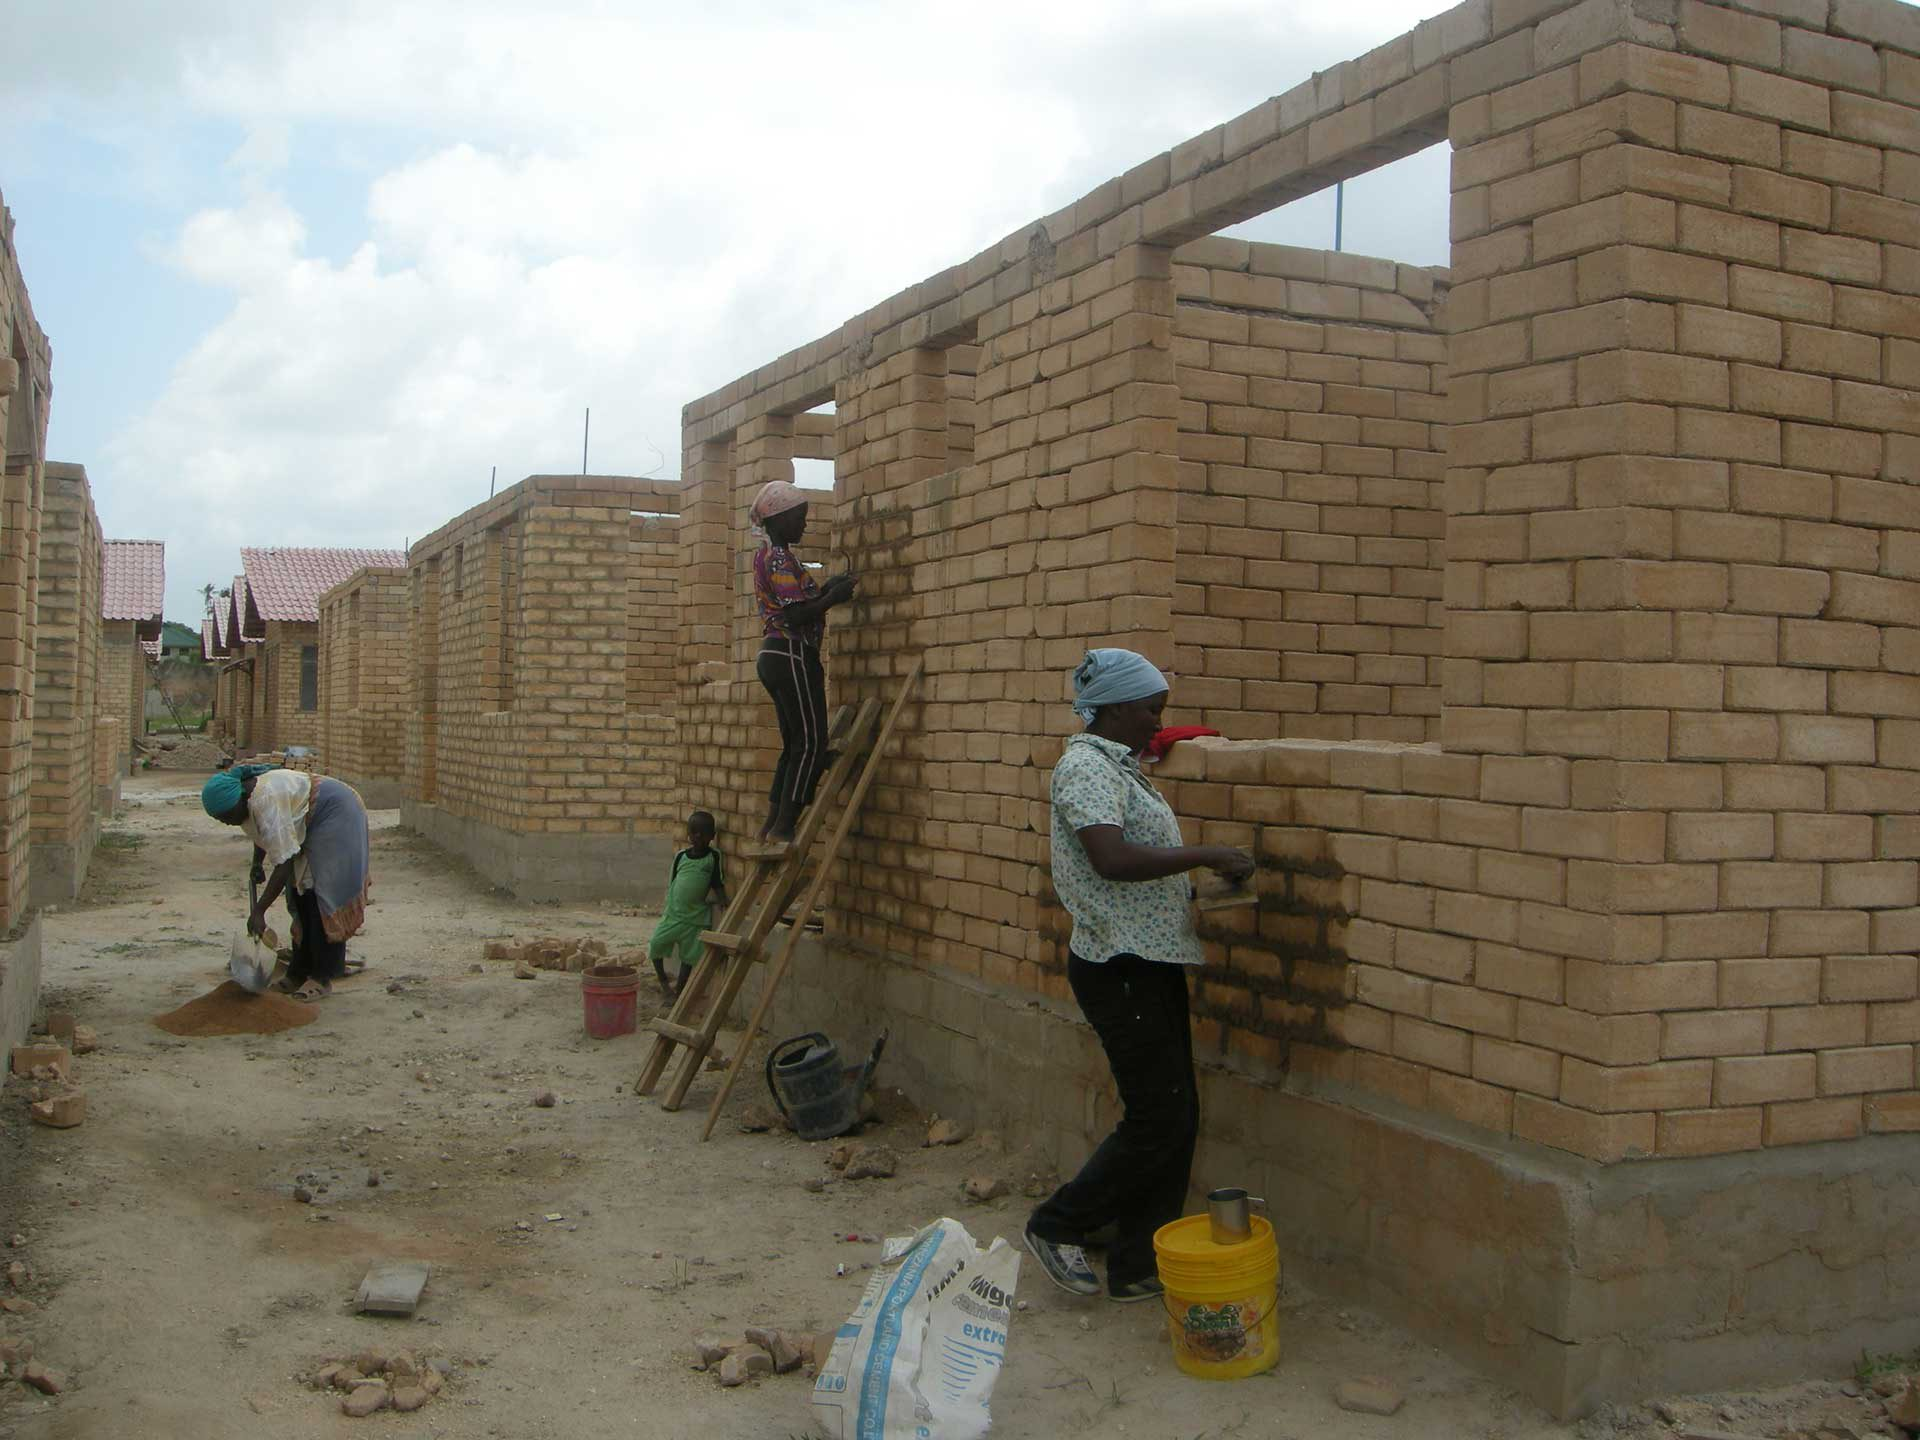 Dar es Salaam, Tanzania: Dispossessed community finances and builds affordable homes